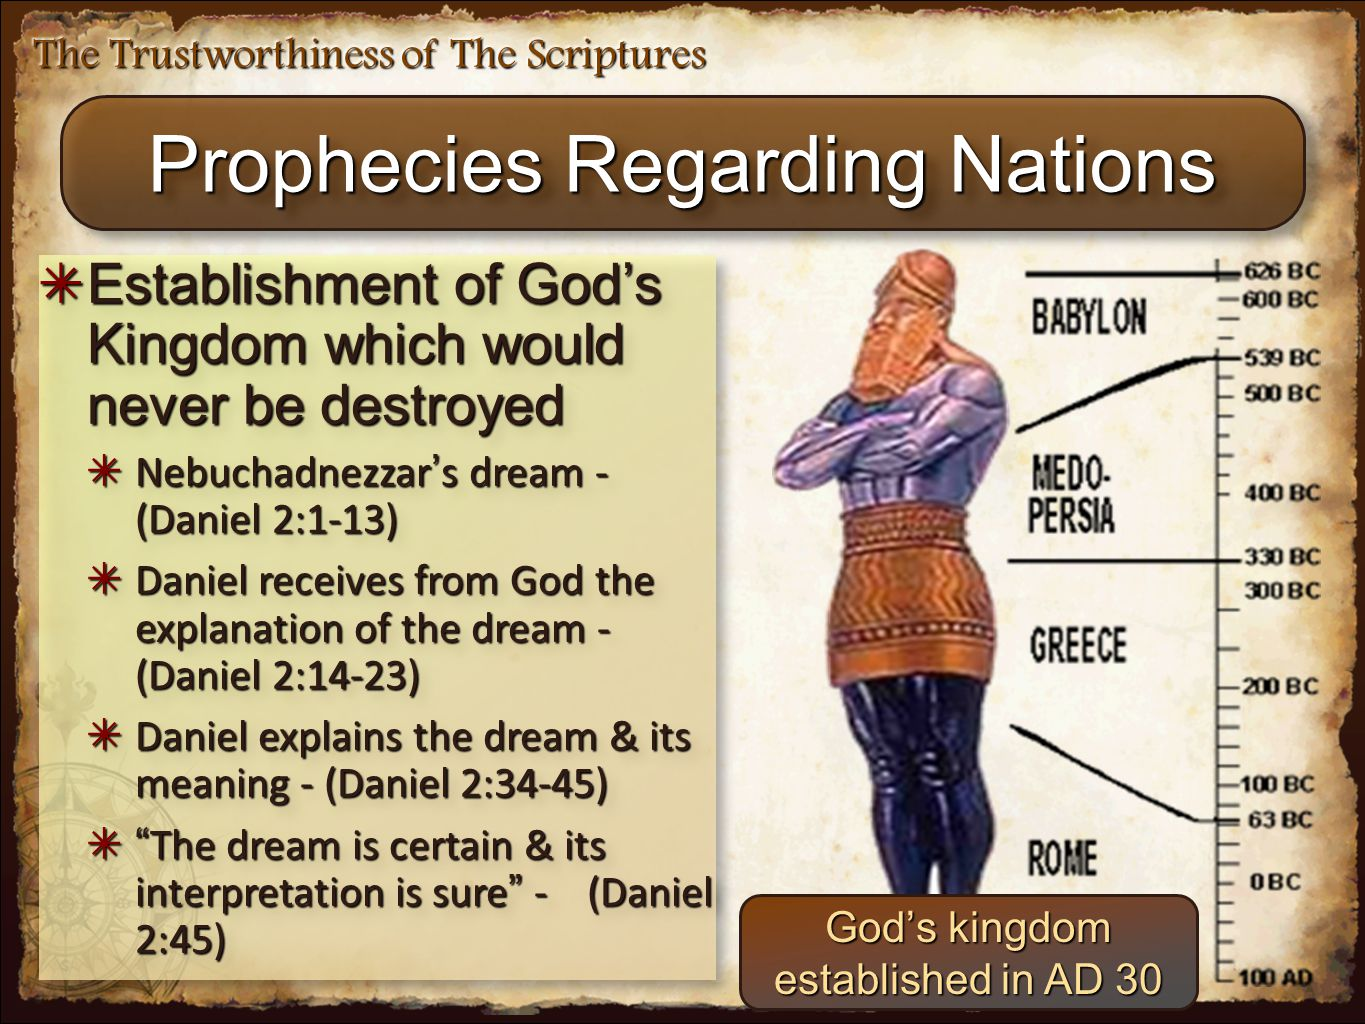 The Trustworthiness of The Scriptures ✴ Establishment of God's Kingdom which would never be destroyed ✴ Nebuchadnezzar ' s dream - (Daniel 2:1-13) ✴ Daniel receives from God the explanation of the dream - (Daniel 2:14-23) ✴ Daniel explains the dream & its meaning - (Daniel 2:34-45) ✴ The dream is certain & its interpretation is sure - (Daniel 2:45) ✴ Establishment of God's Kingdom which would never be destroyed ✴ Nebuchadnezzar ' s dream - (Daniel 2:1-13) ✴ Daniel receives from God the explanation of the dream - (Daniel 2:14-23) ✴ Daniel explains the dream & its meaning - (Daniel 2:34-45) ✴ The dream is certain & its interpretation is sure - (Daniel 2:45) God's kingdom established in AD 30 Prophecies Regarding Nations